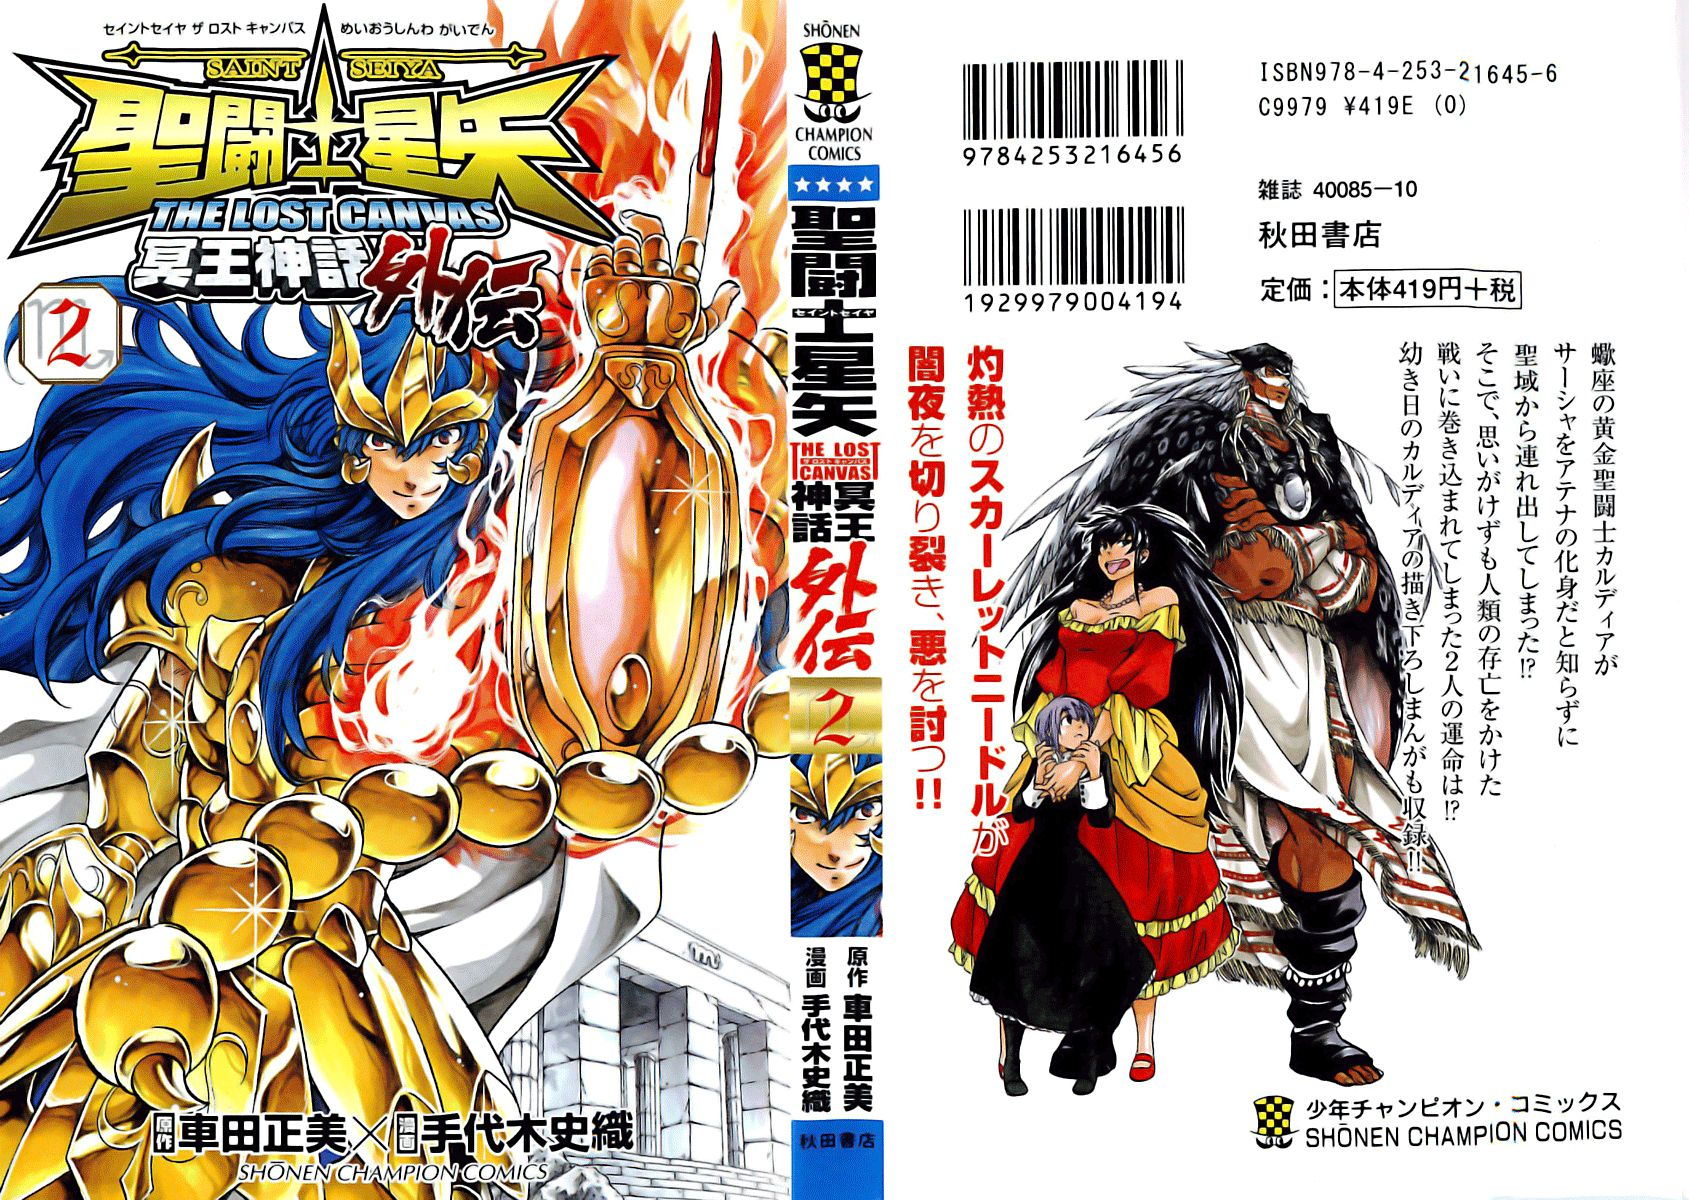 Saint Seiya - The Lost Canvas - Meiou Shinwa Gaiden 10 Page 1